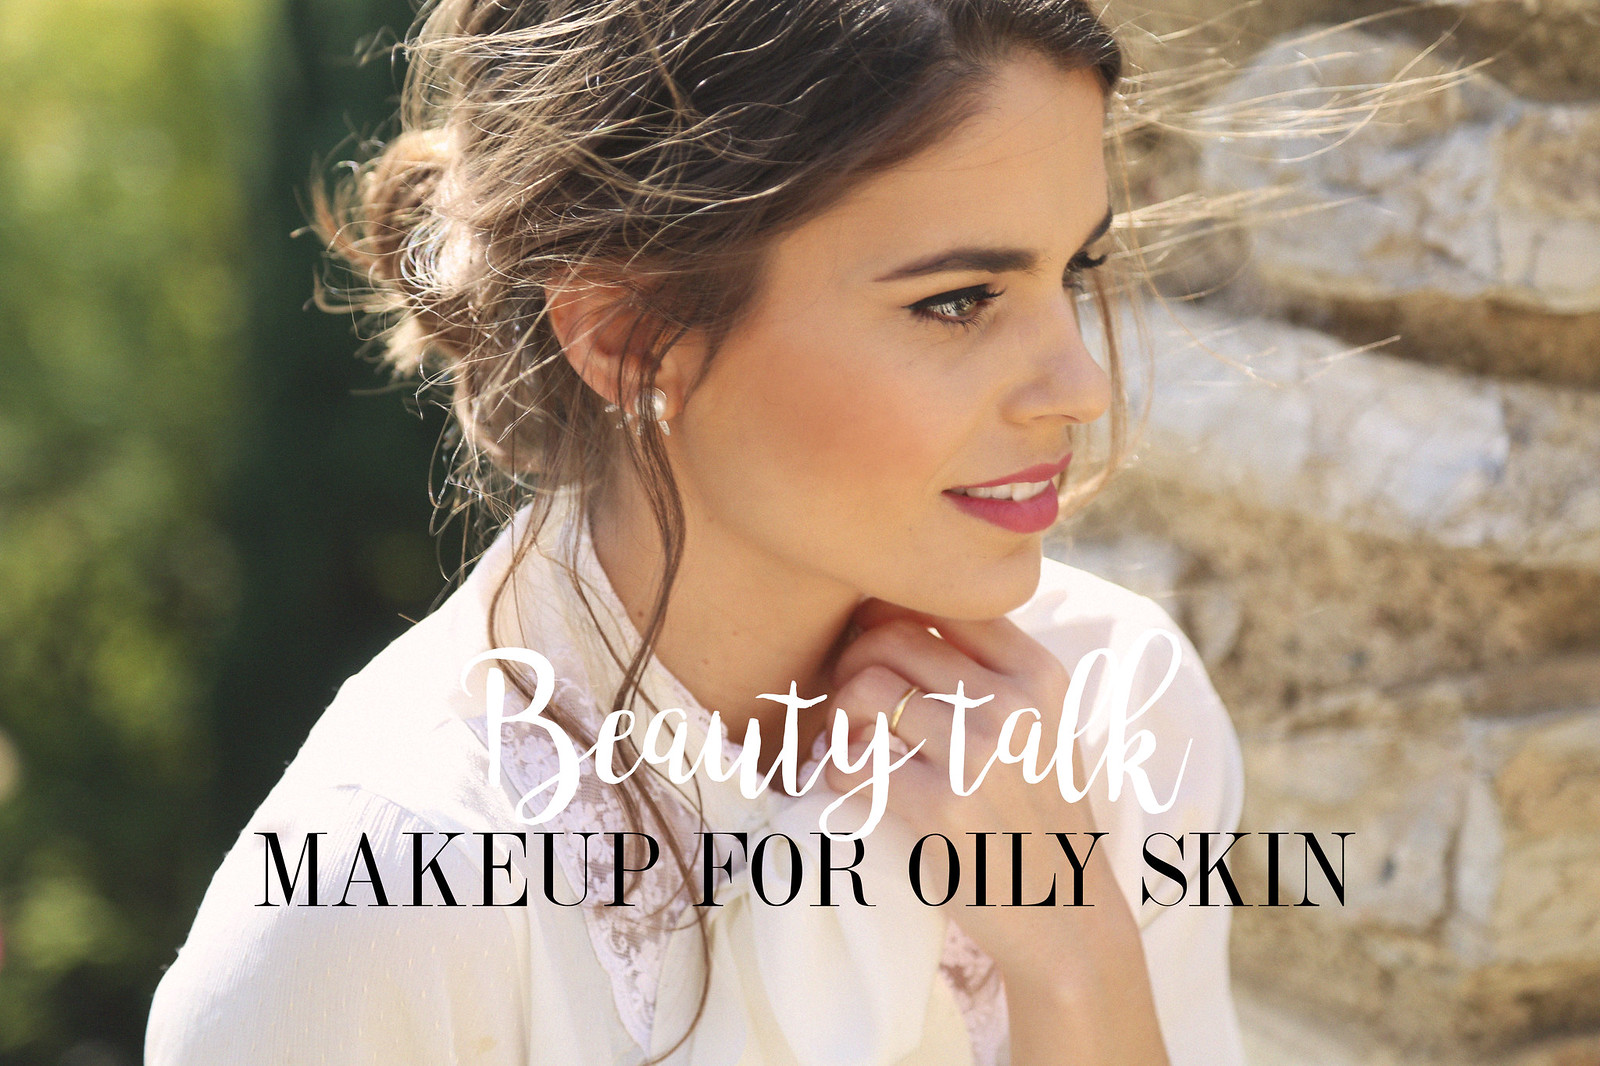 cover makeup tip for oily skin